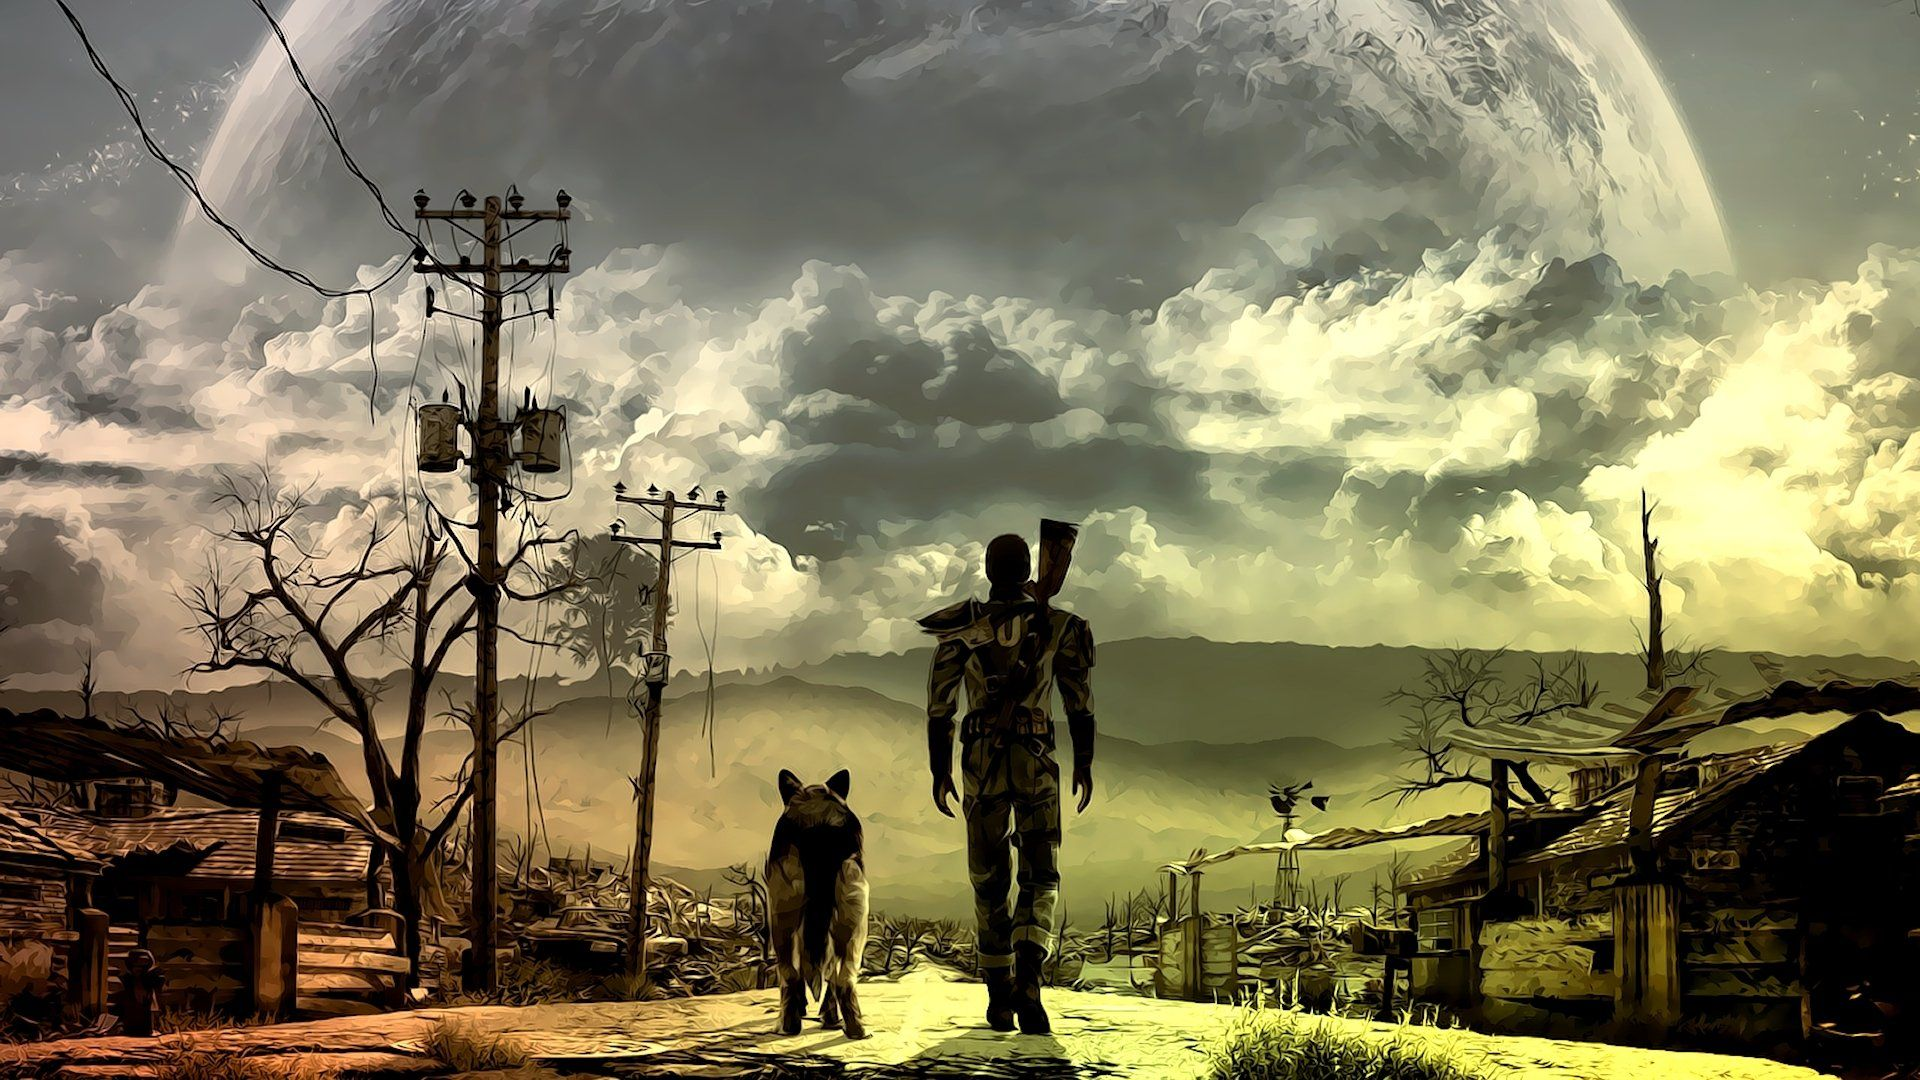 Fallout 3 Wallpapers Top Free Fallout 3 Backgrounds Wallpaperaccess